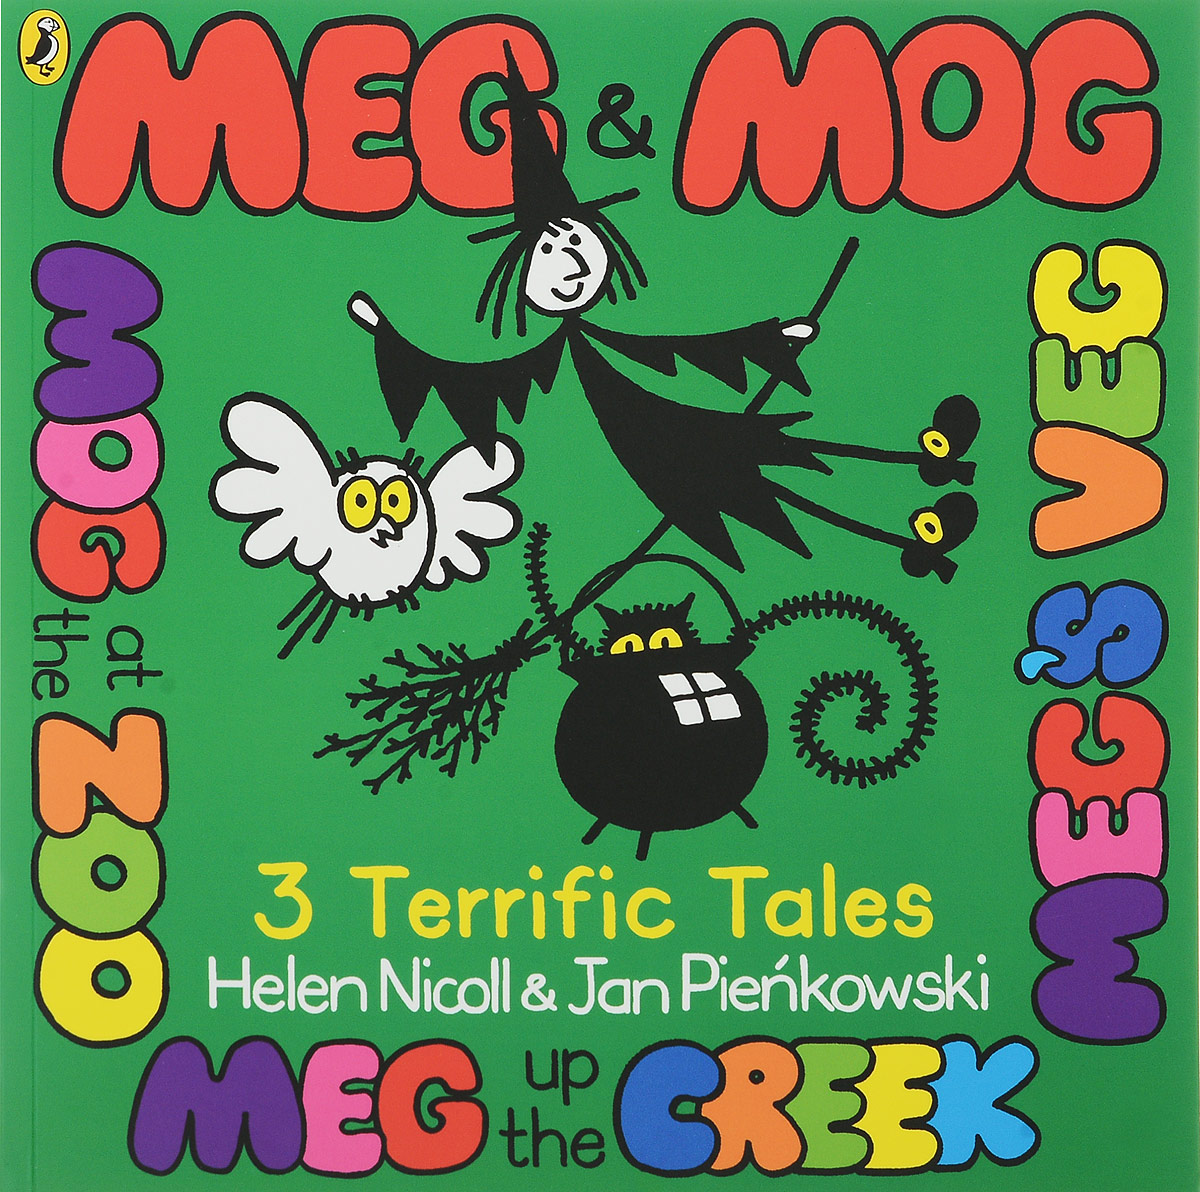 Meg & Mog: 3 Terrific Tales odessey and oracle 40th anniversary live concert